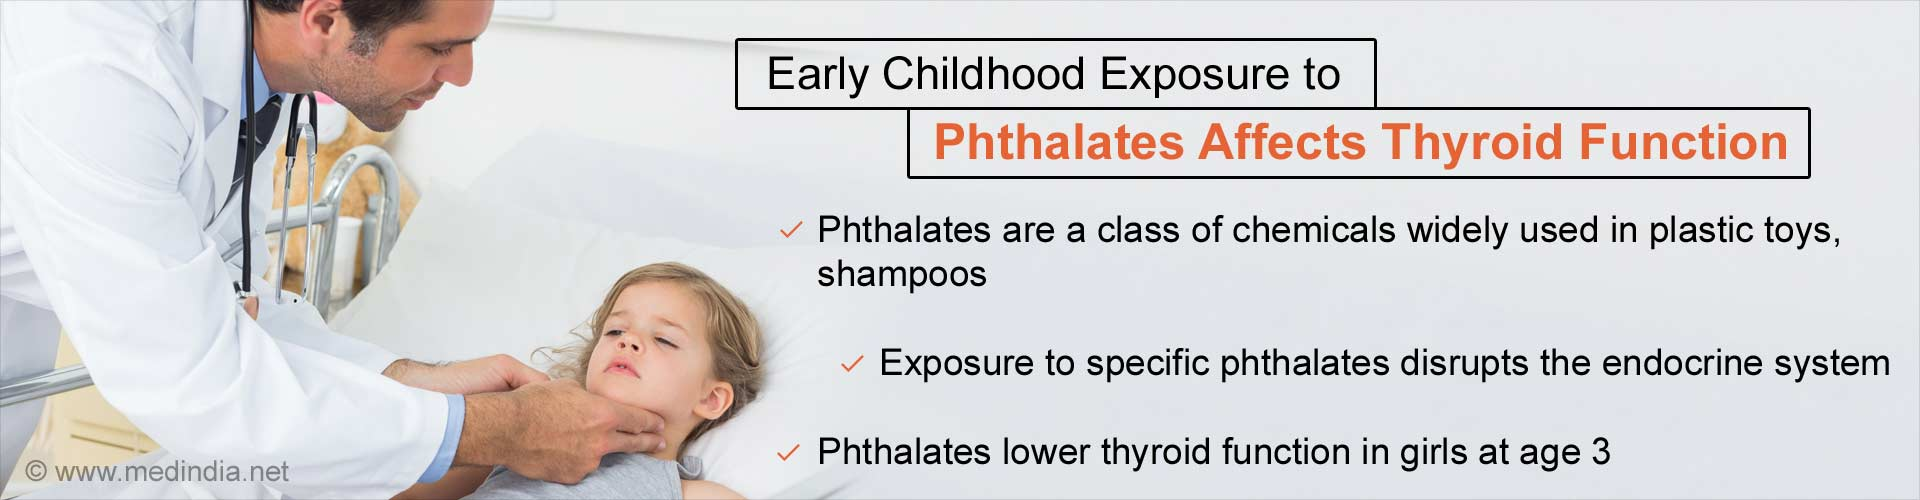 Phthalates in Toys, Shampoo May Impair Thyroid Function In Young Girls